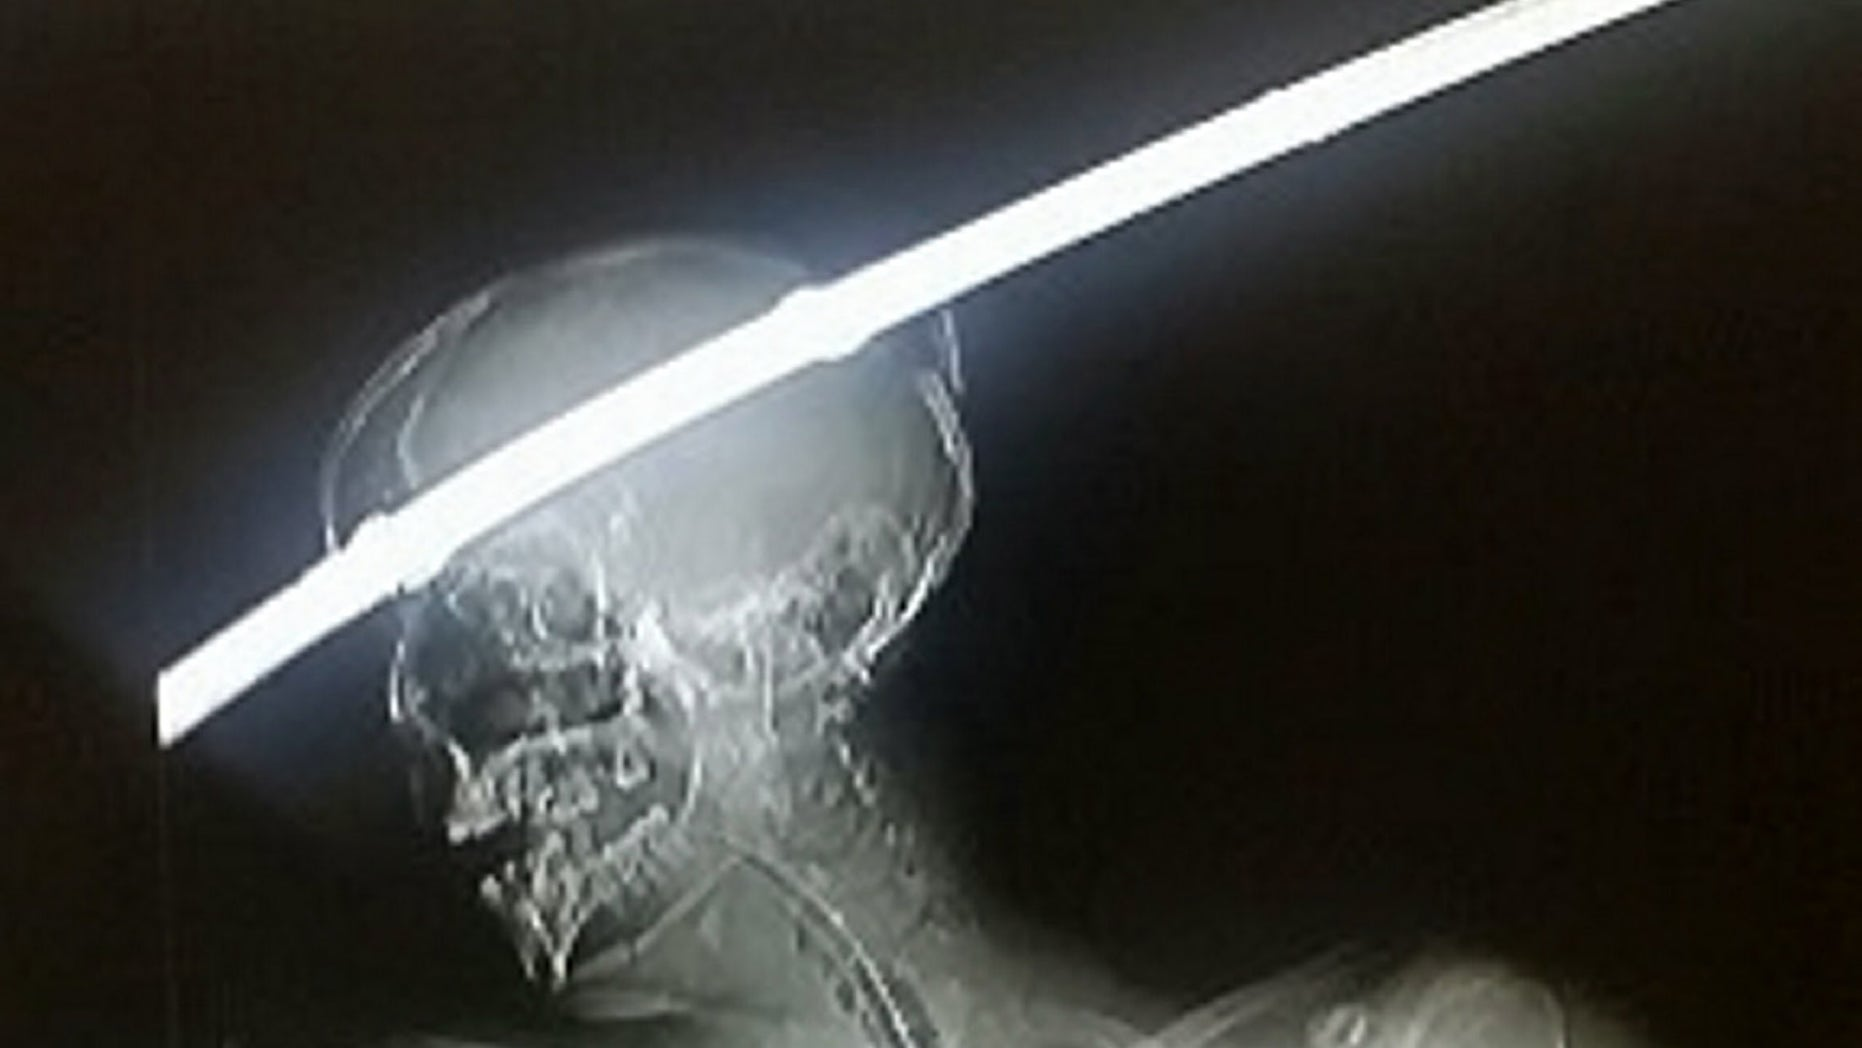 Car accident victim survives having head impaled by metal rod   Fox News